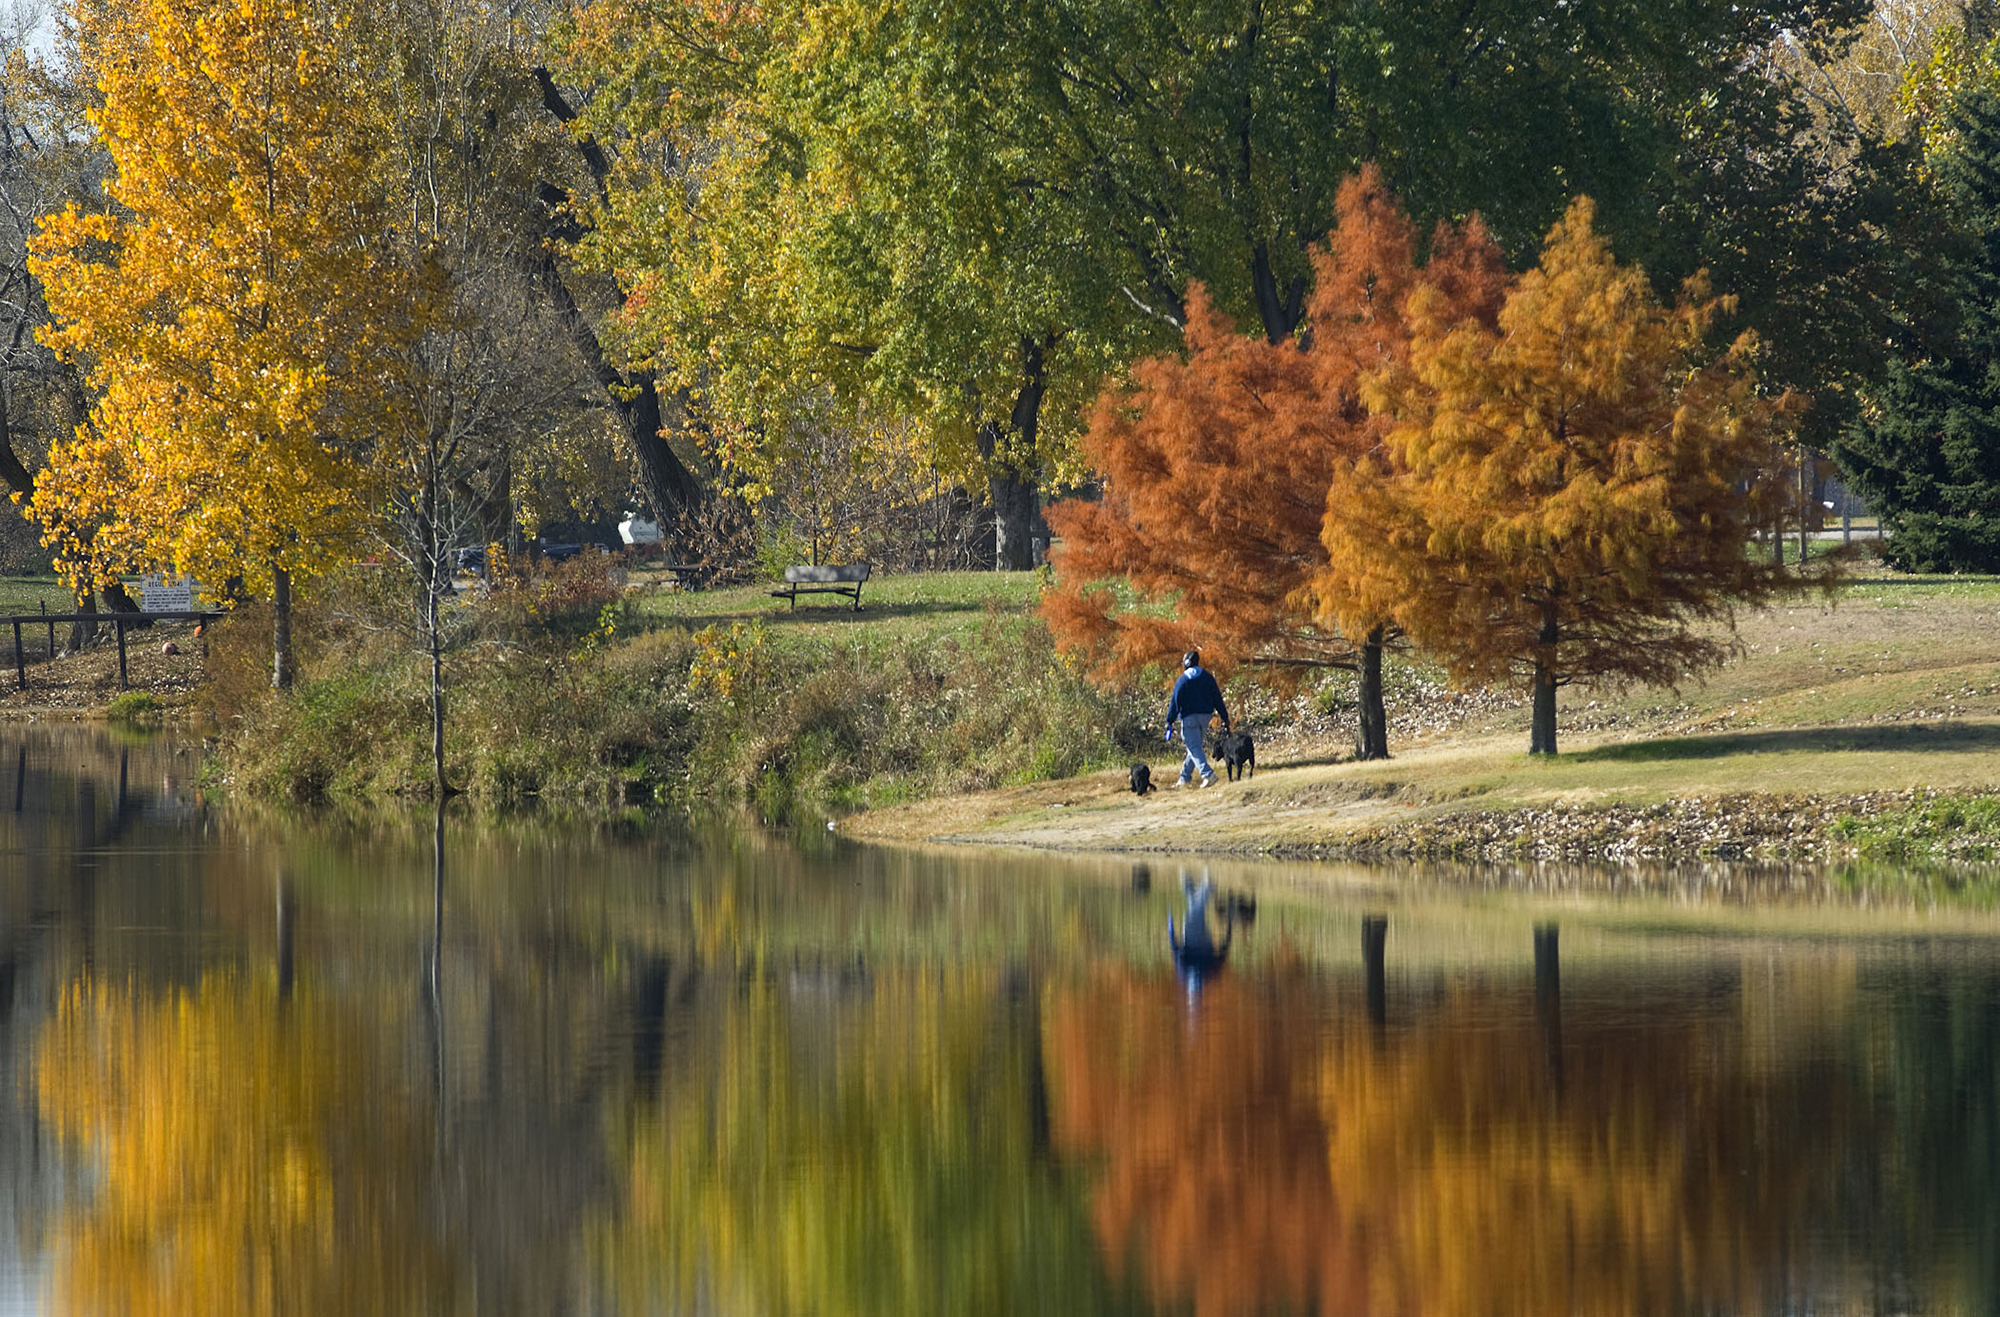 Louisville Lakes State Recreation Area | Rick Neibel / Nebraska Tourism